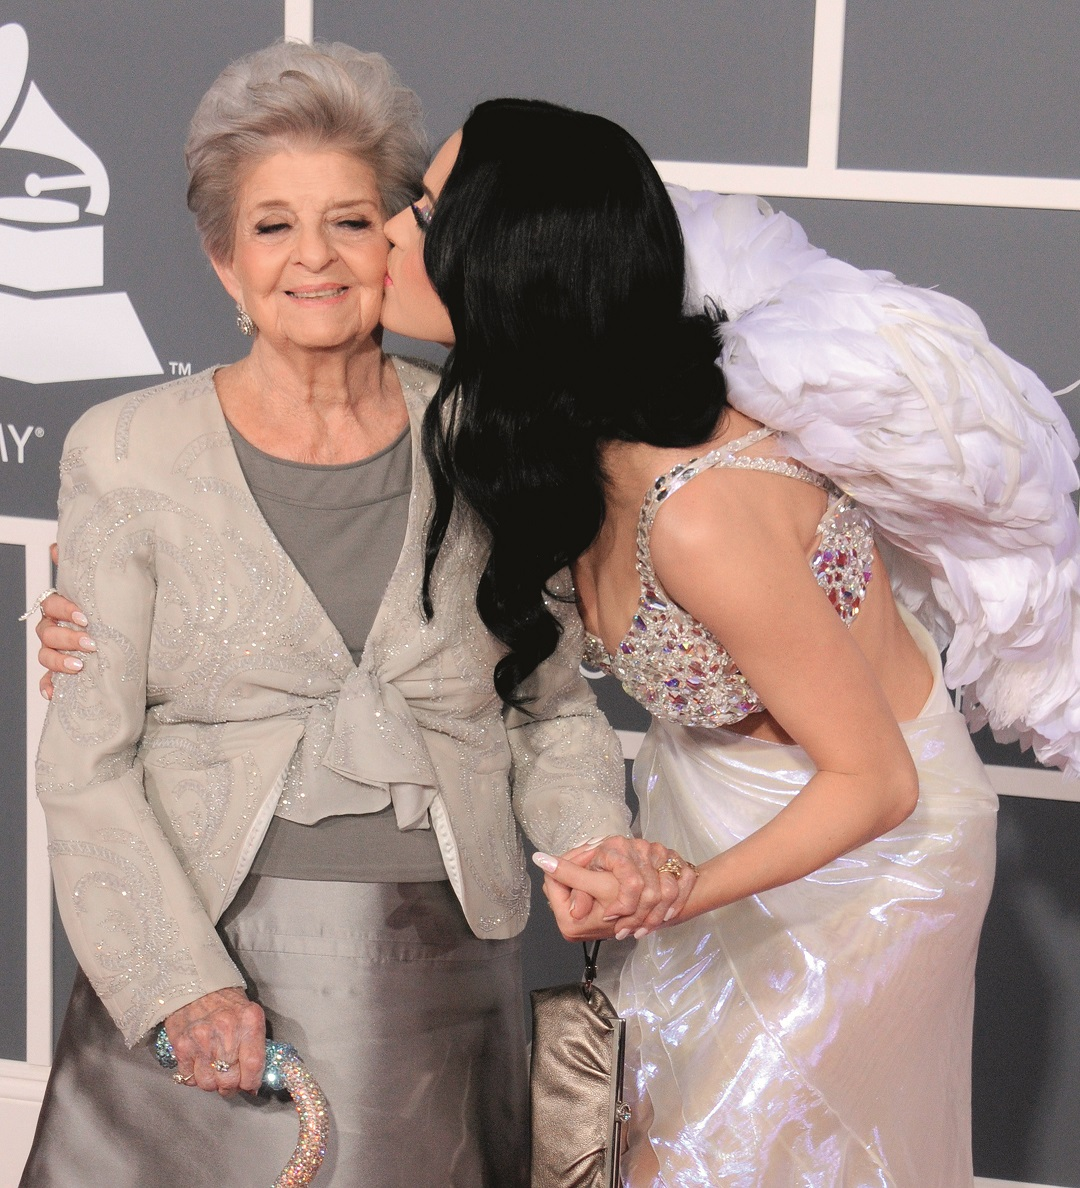 LOS ANGELES, CA - FEBRUARY 13: Katy Perry and grandmother Ann Hudson arrive for the 53rd Annual GRAMMY Awards at the Staples Center, February 13, 2011 in Los Angeles, California. (Photo by Gregg DeGuire/FilmMagic)